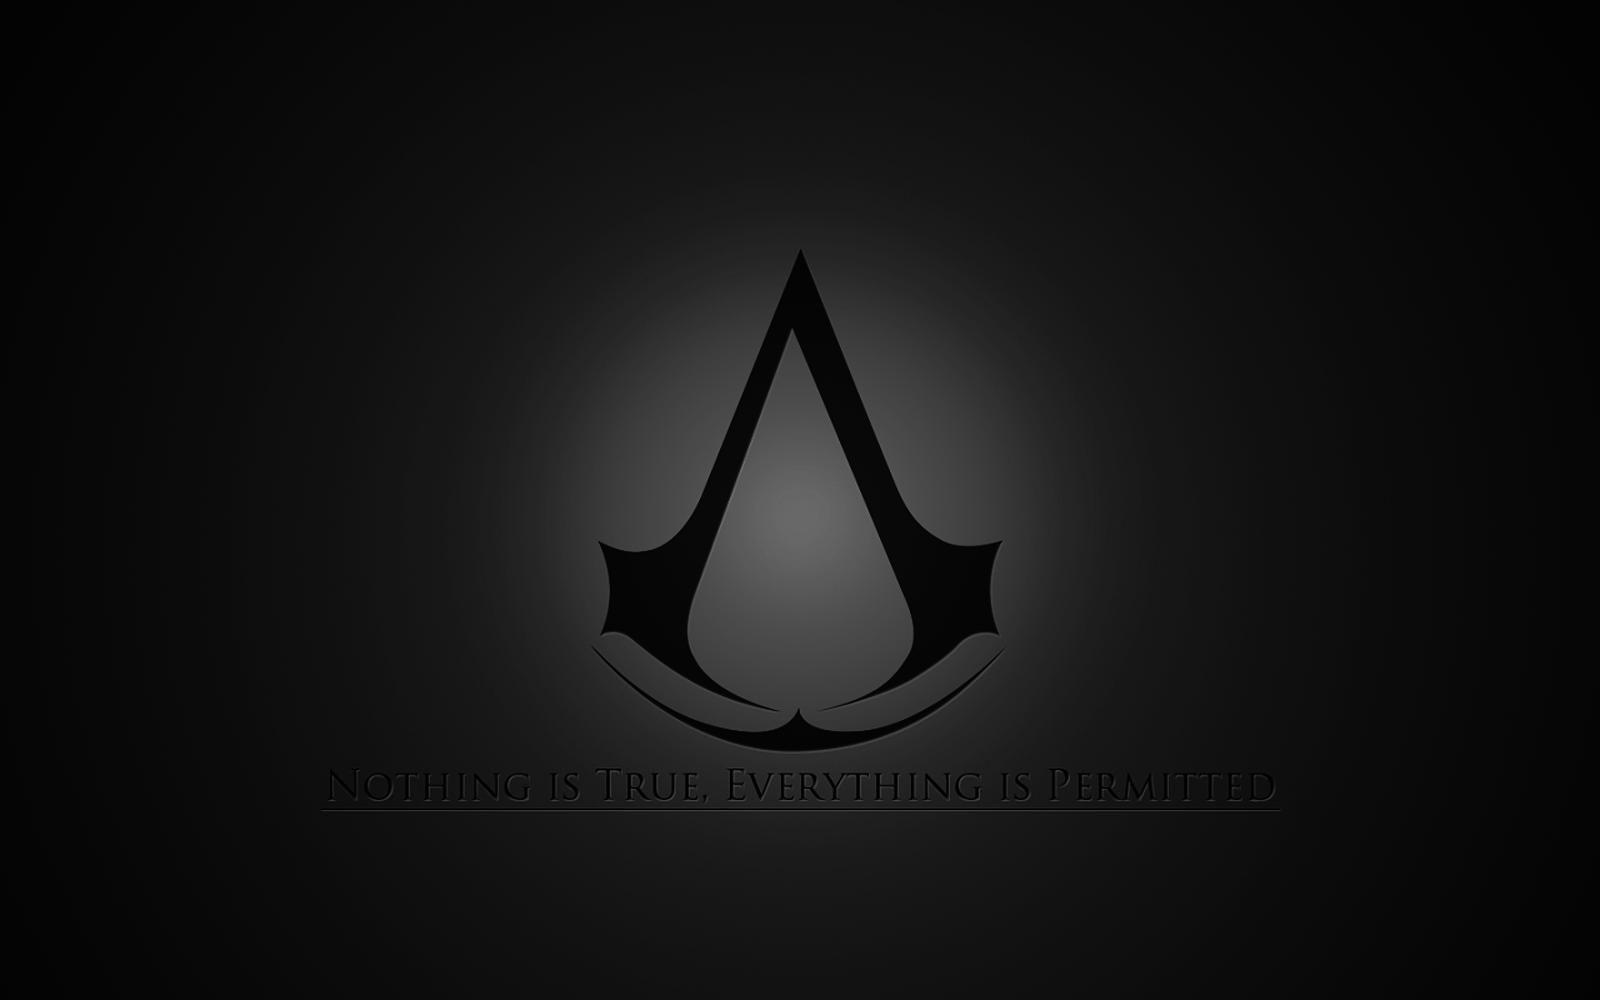 iphone assassins creed logo wallpaper phone